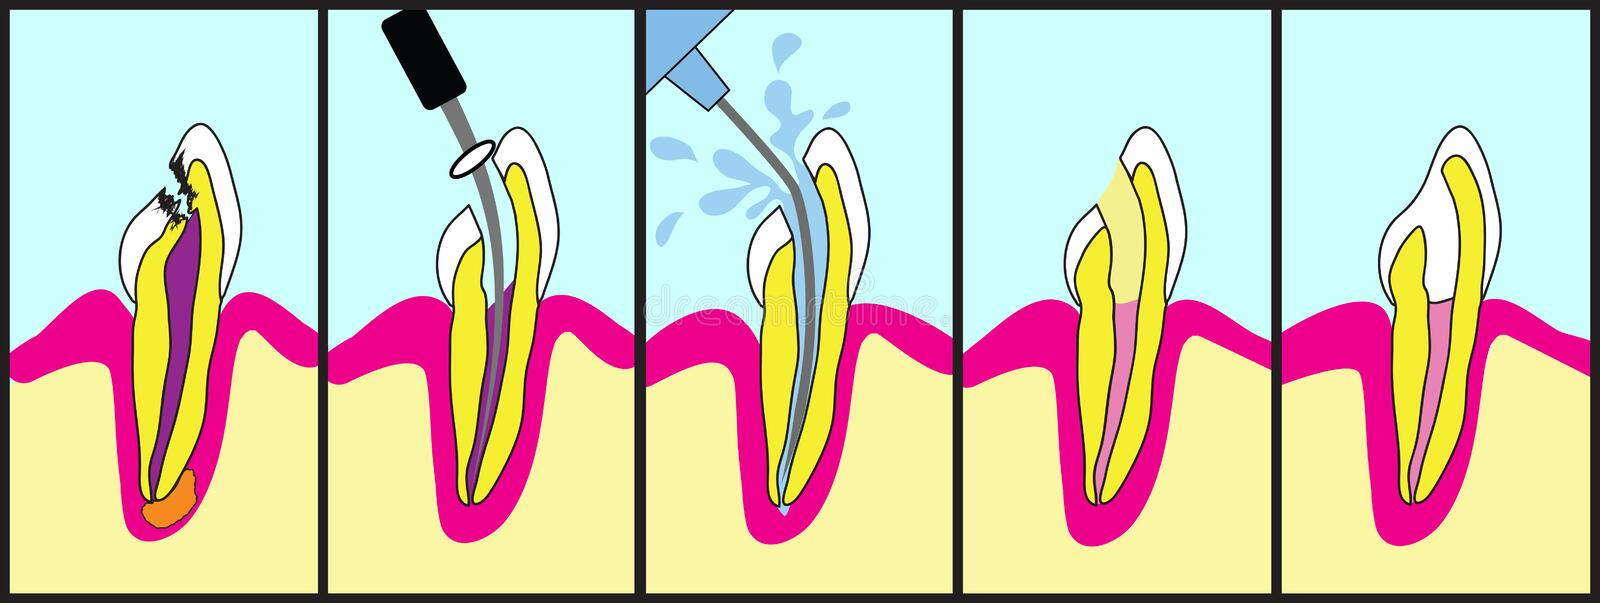 Root Canal Treatment royalty free illustration